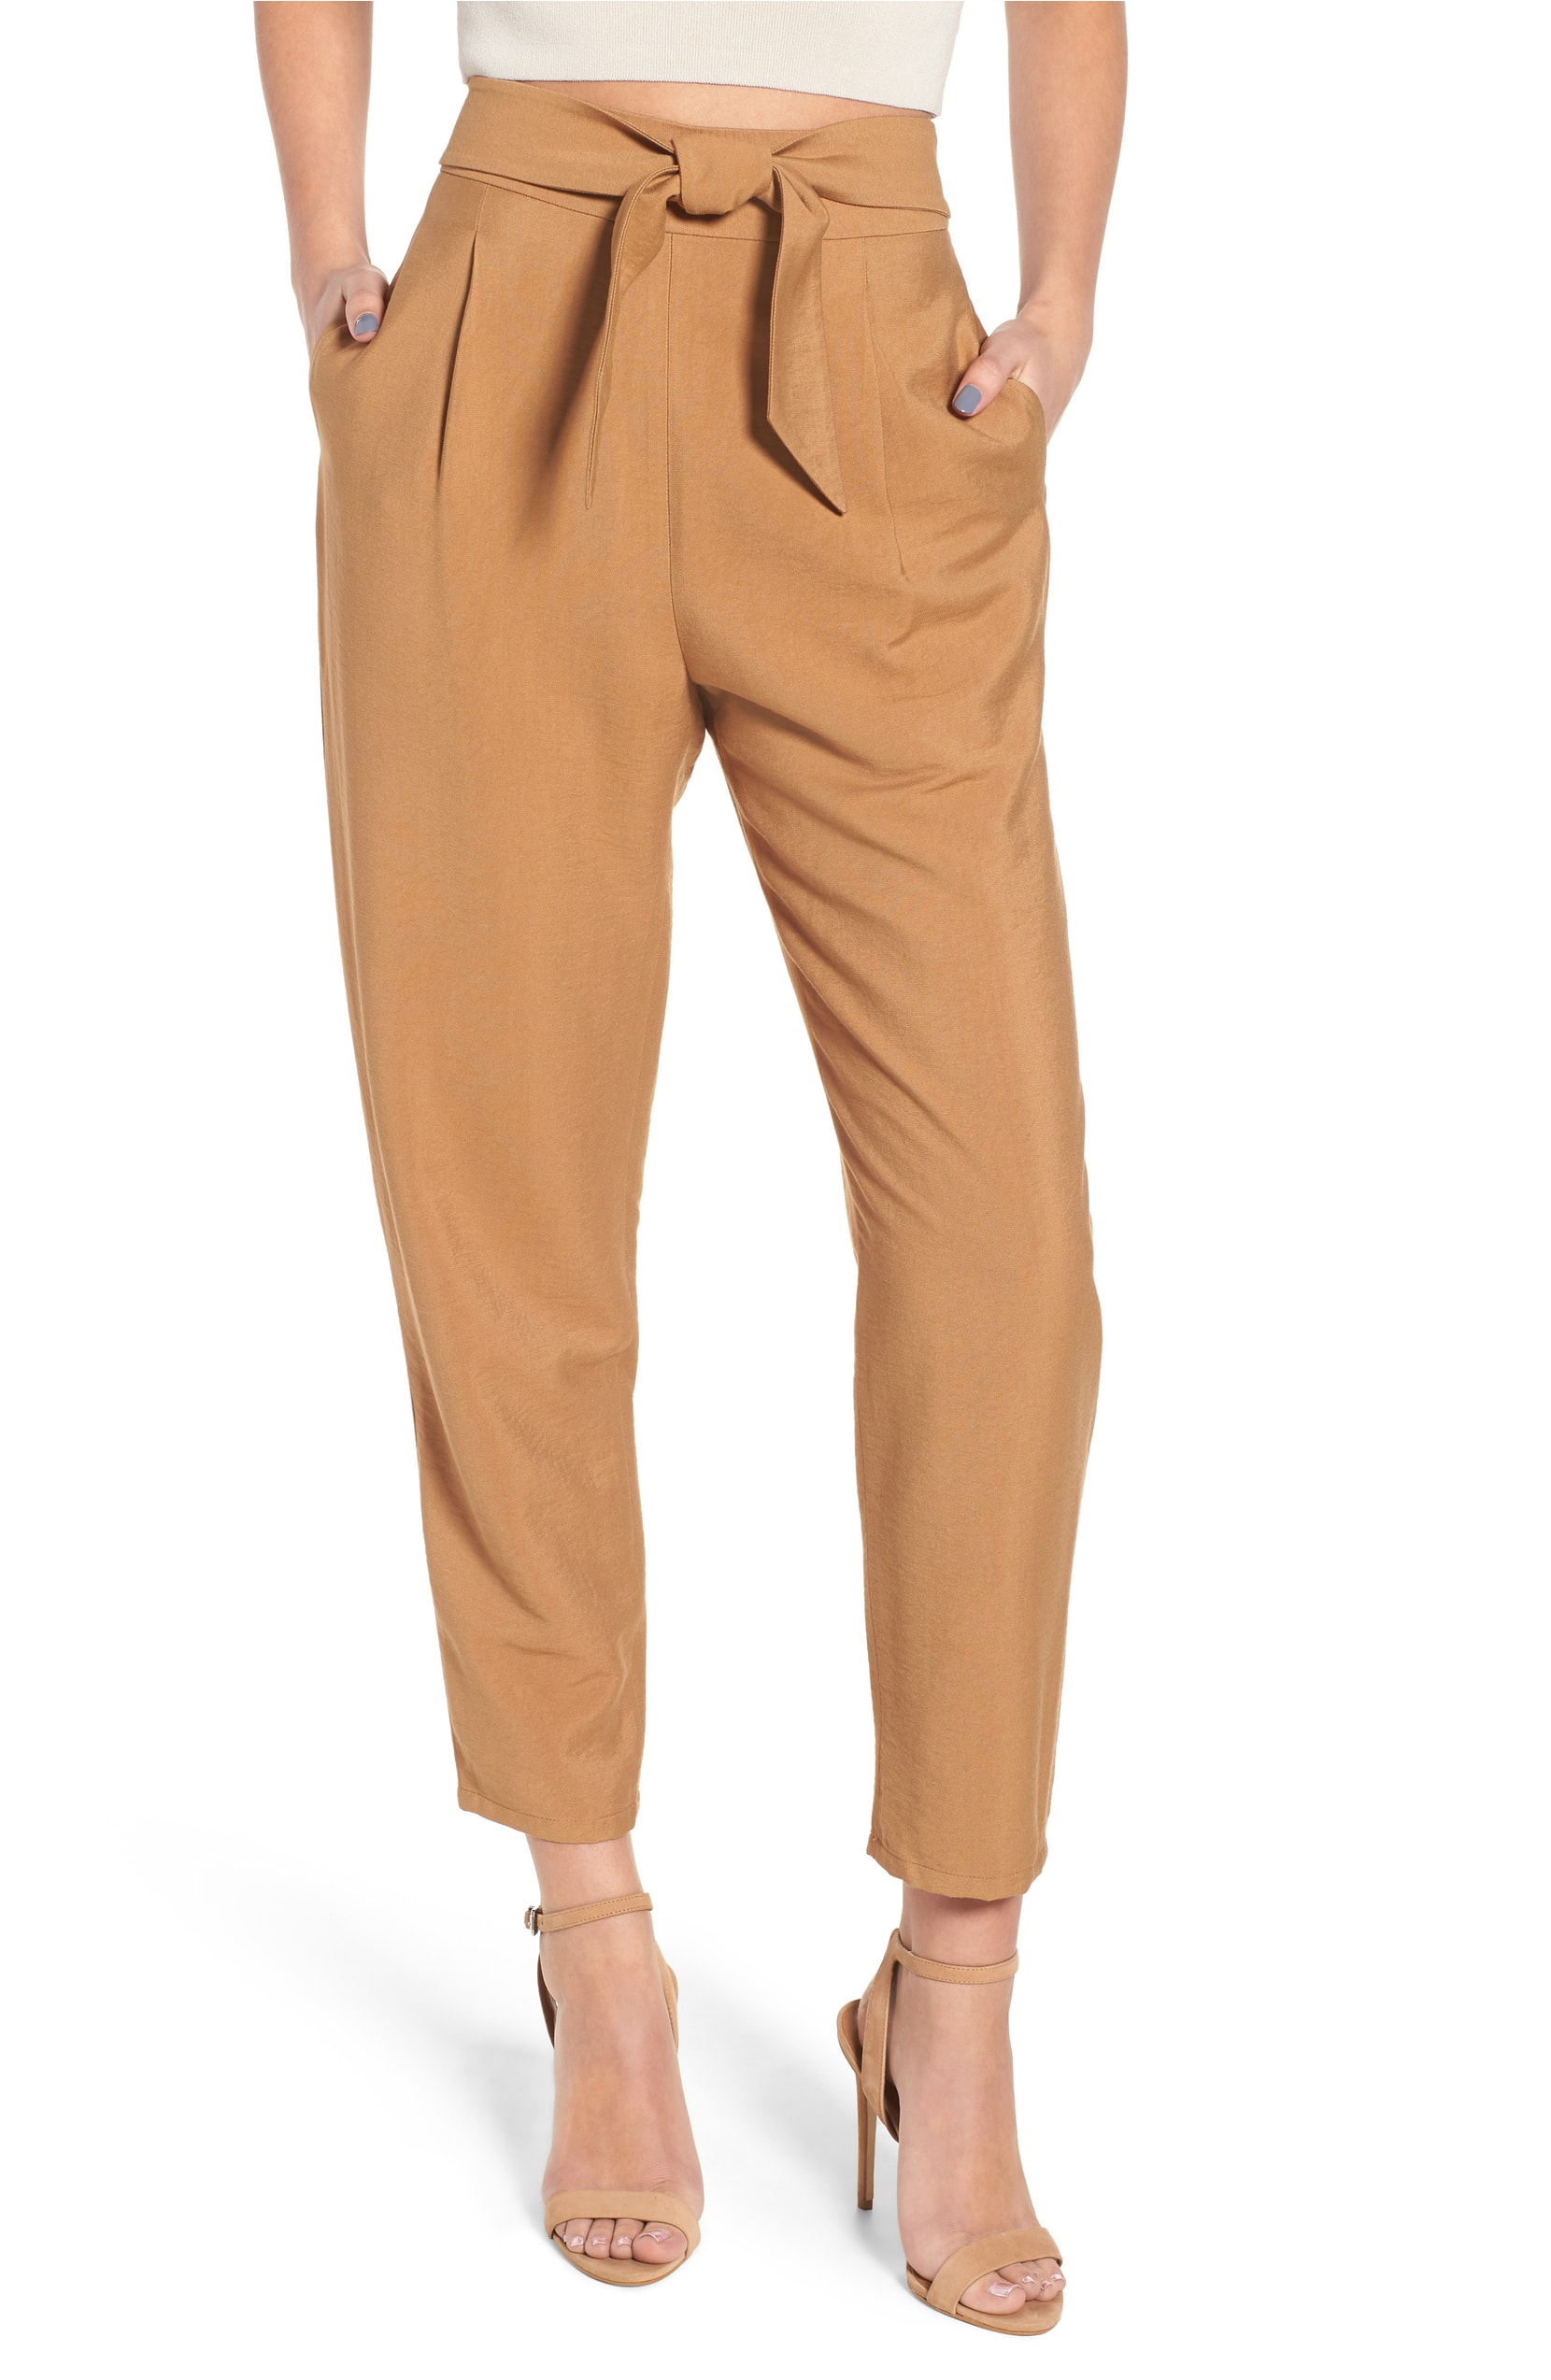 tan tie front trouser under $50 at the Nordsstrom Half yearly sale